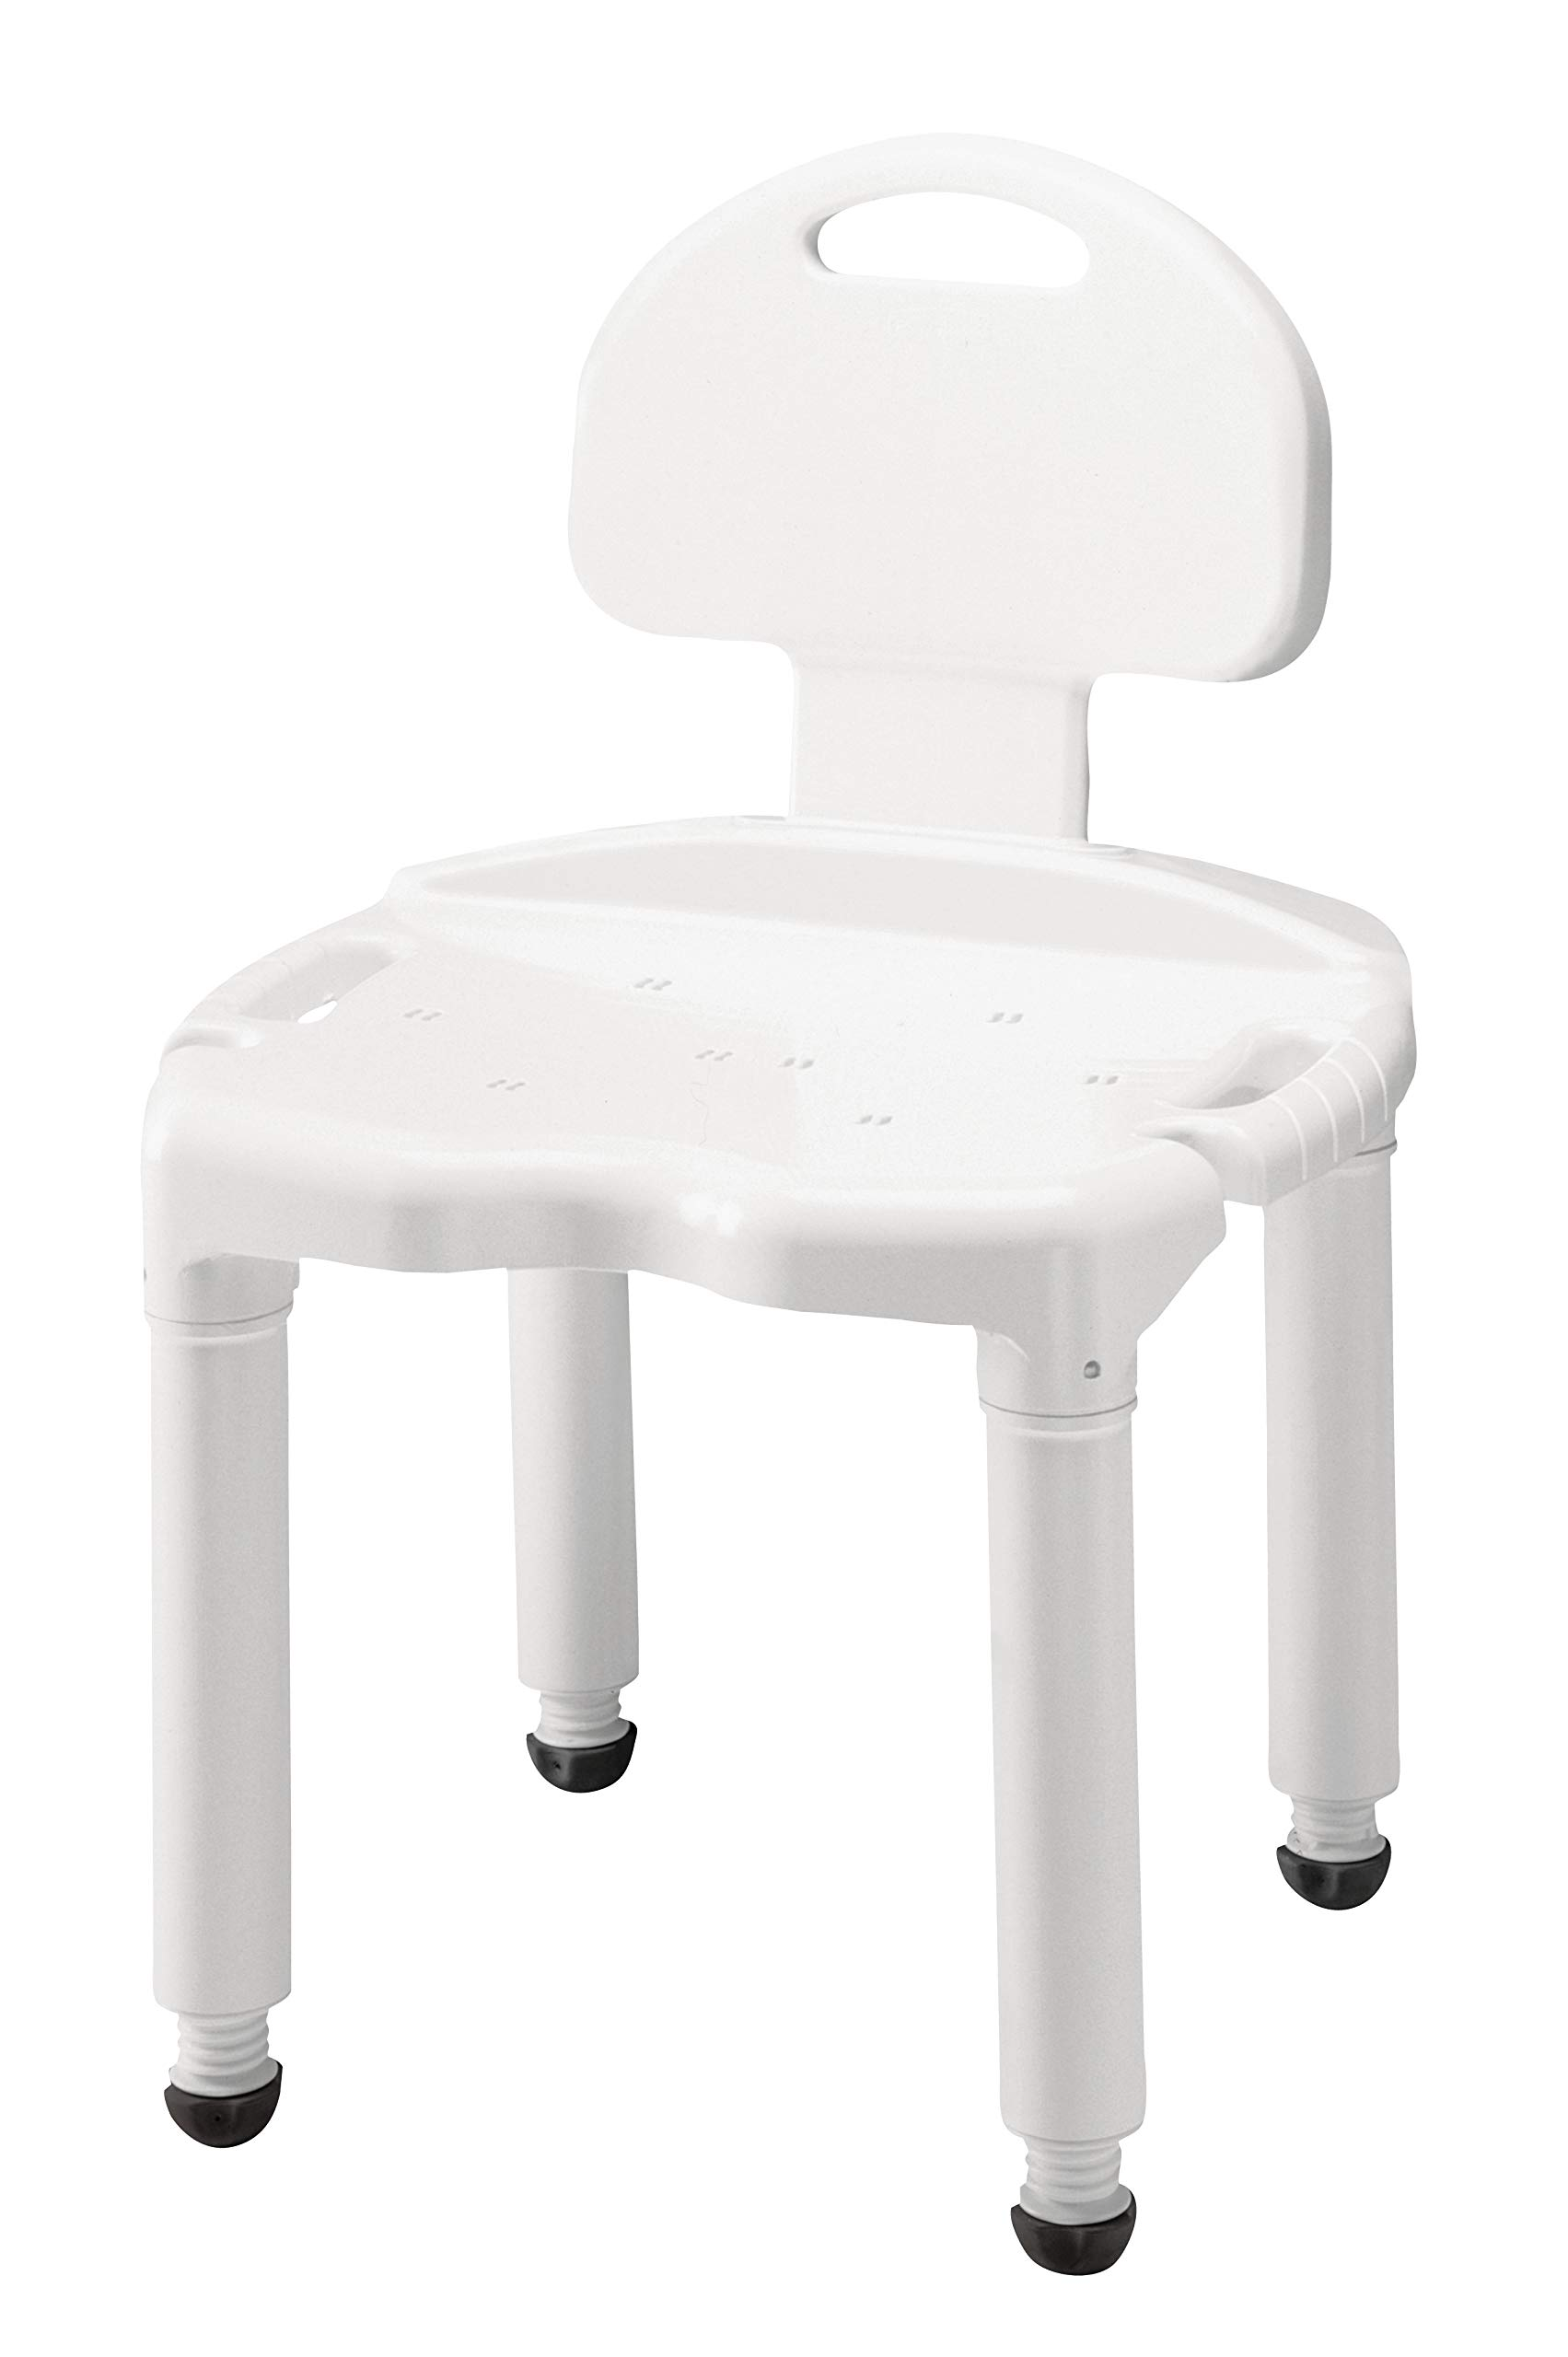 Medical Tool-Free Assembly Bathtub Shower Chair Seat and Benchwith Back